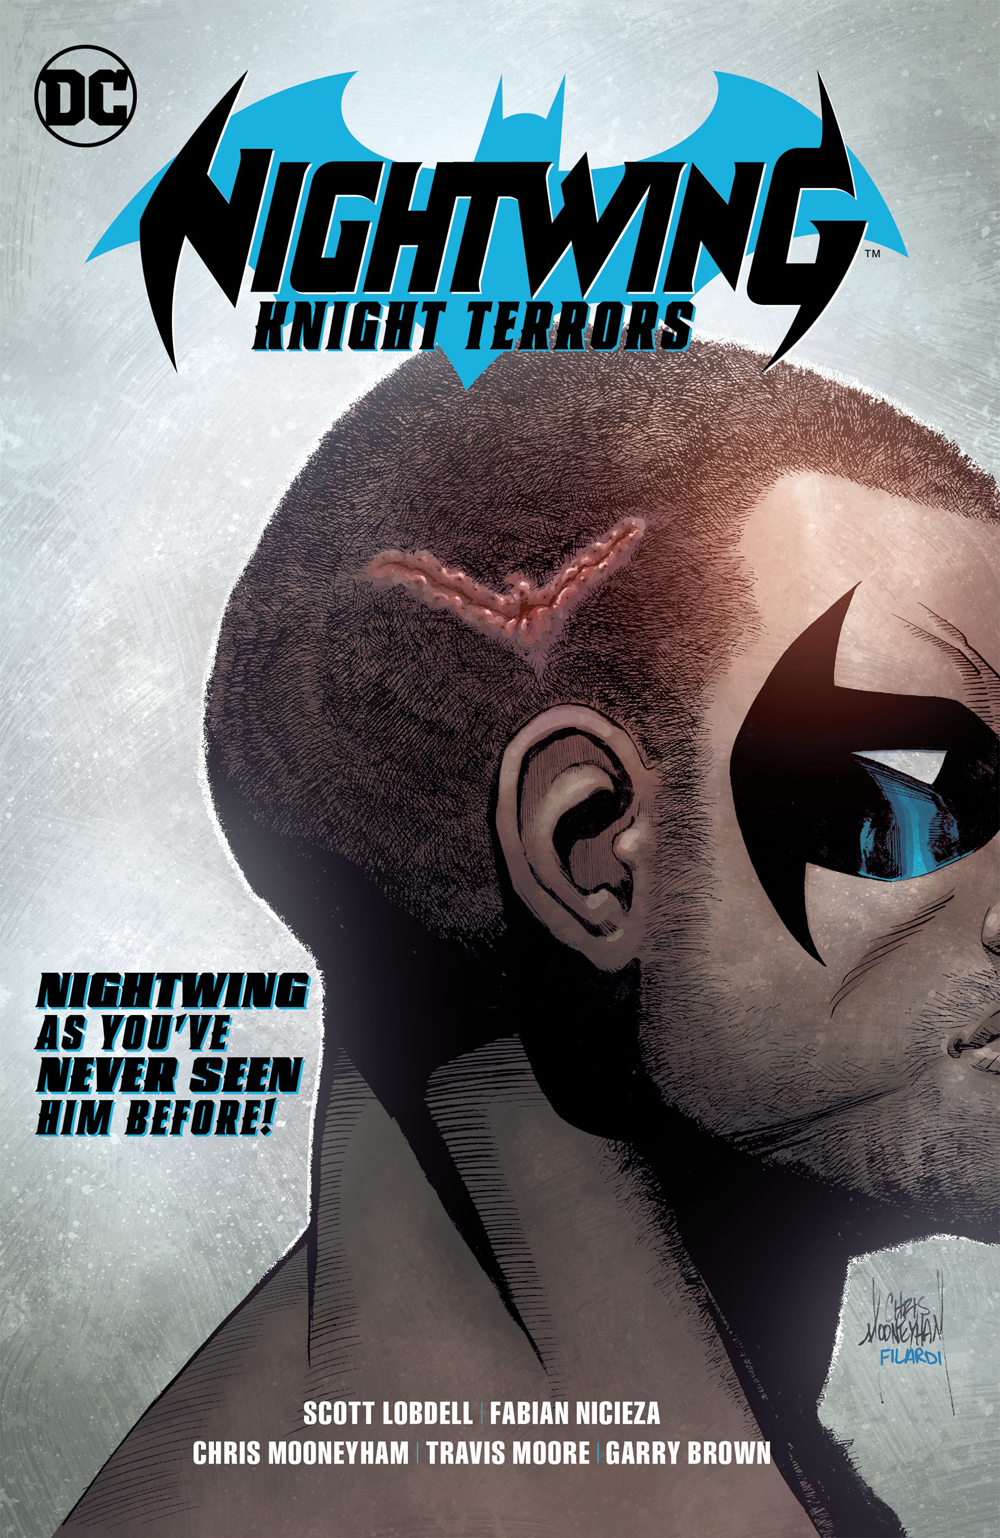 Nightwing: Knight Terrors TP